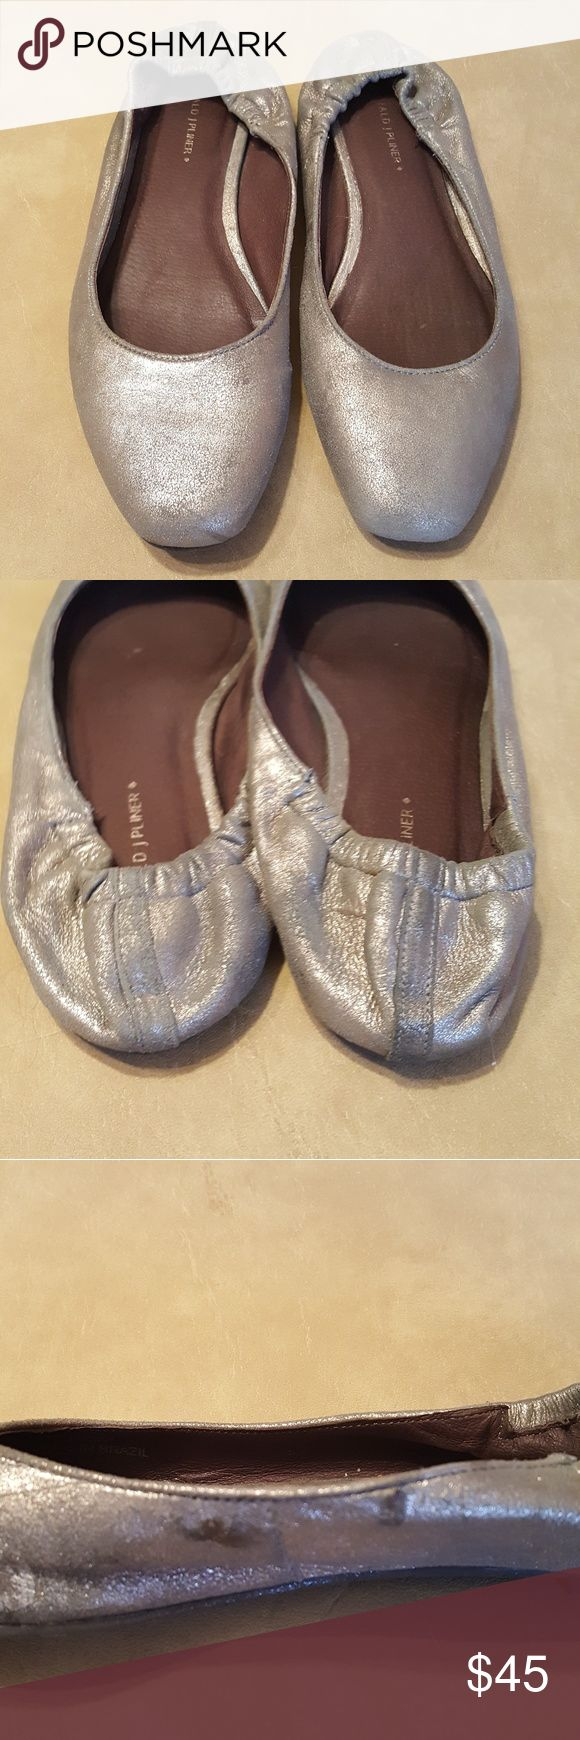 Donald J Pliner silver ballet flats Donald J Pliner brushed silver suede ballet flats. Blemishes on right shoe-as shown in photo. Donald J. Pliner Shoes Flats & Loafers